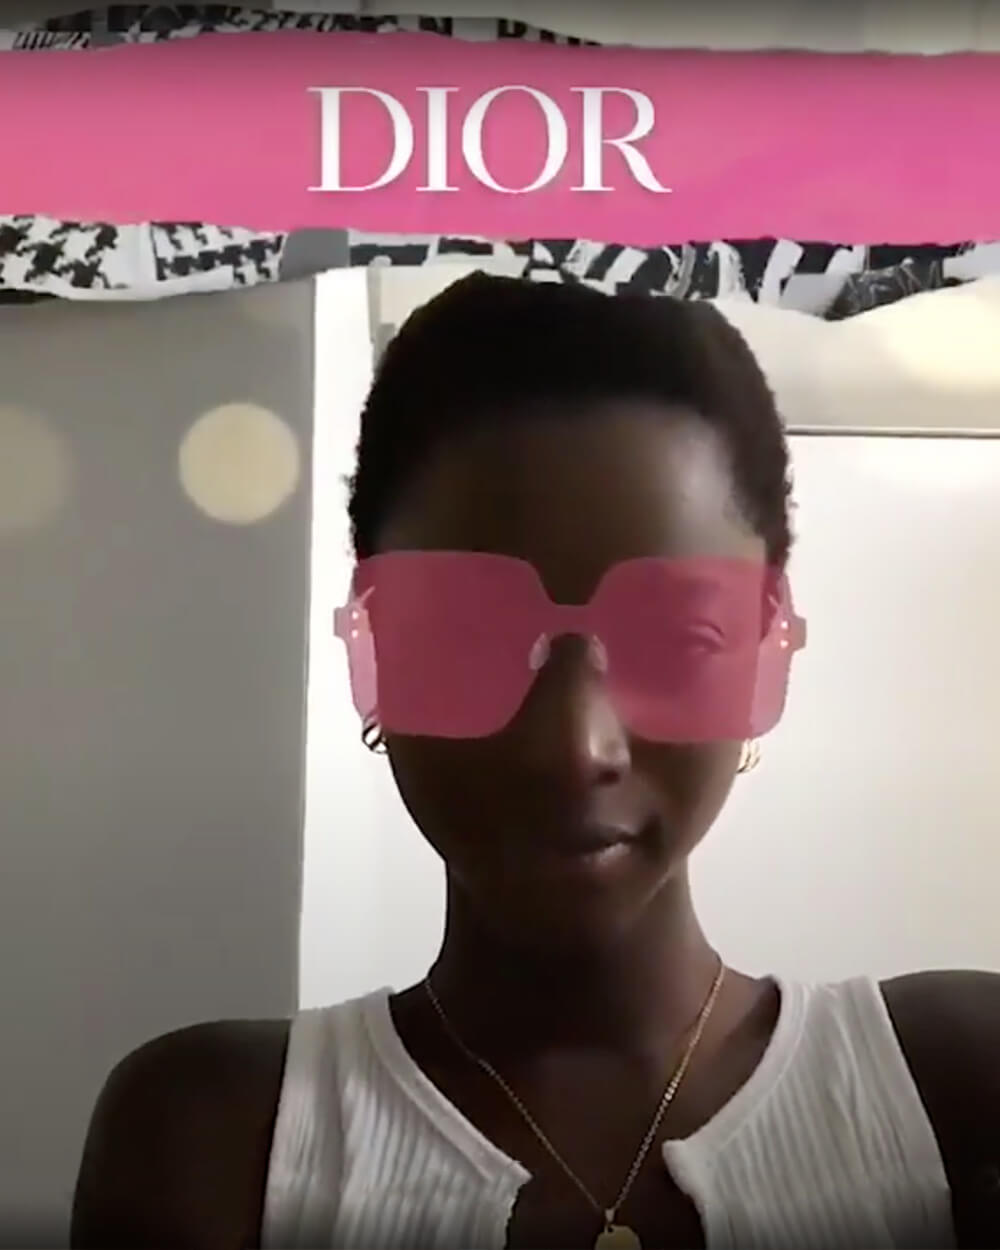 Dior VR sunglasses